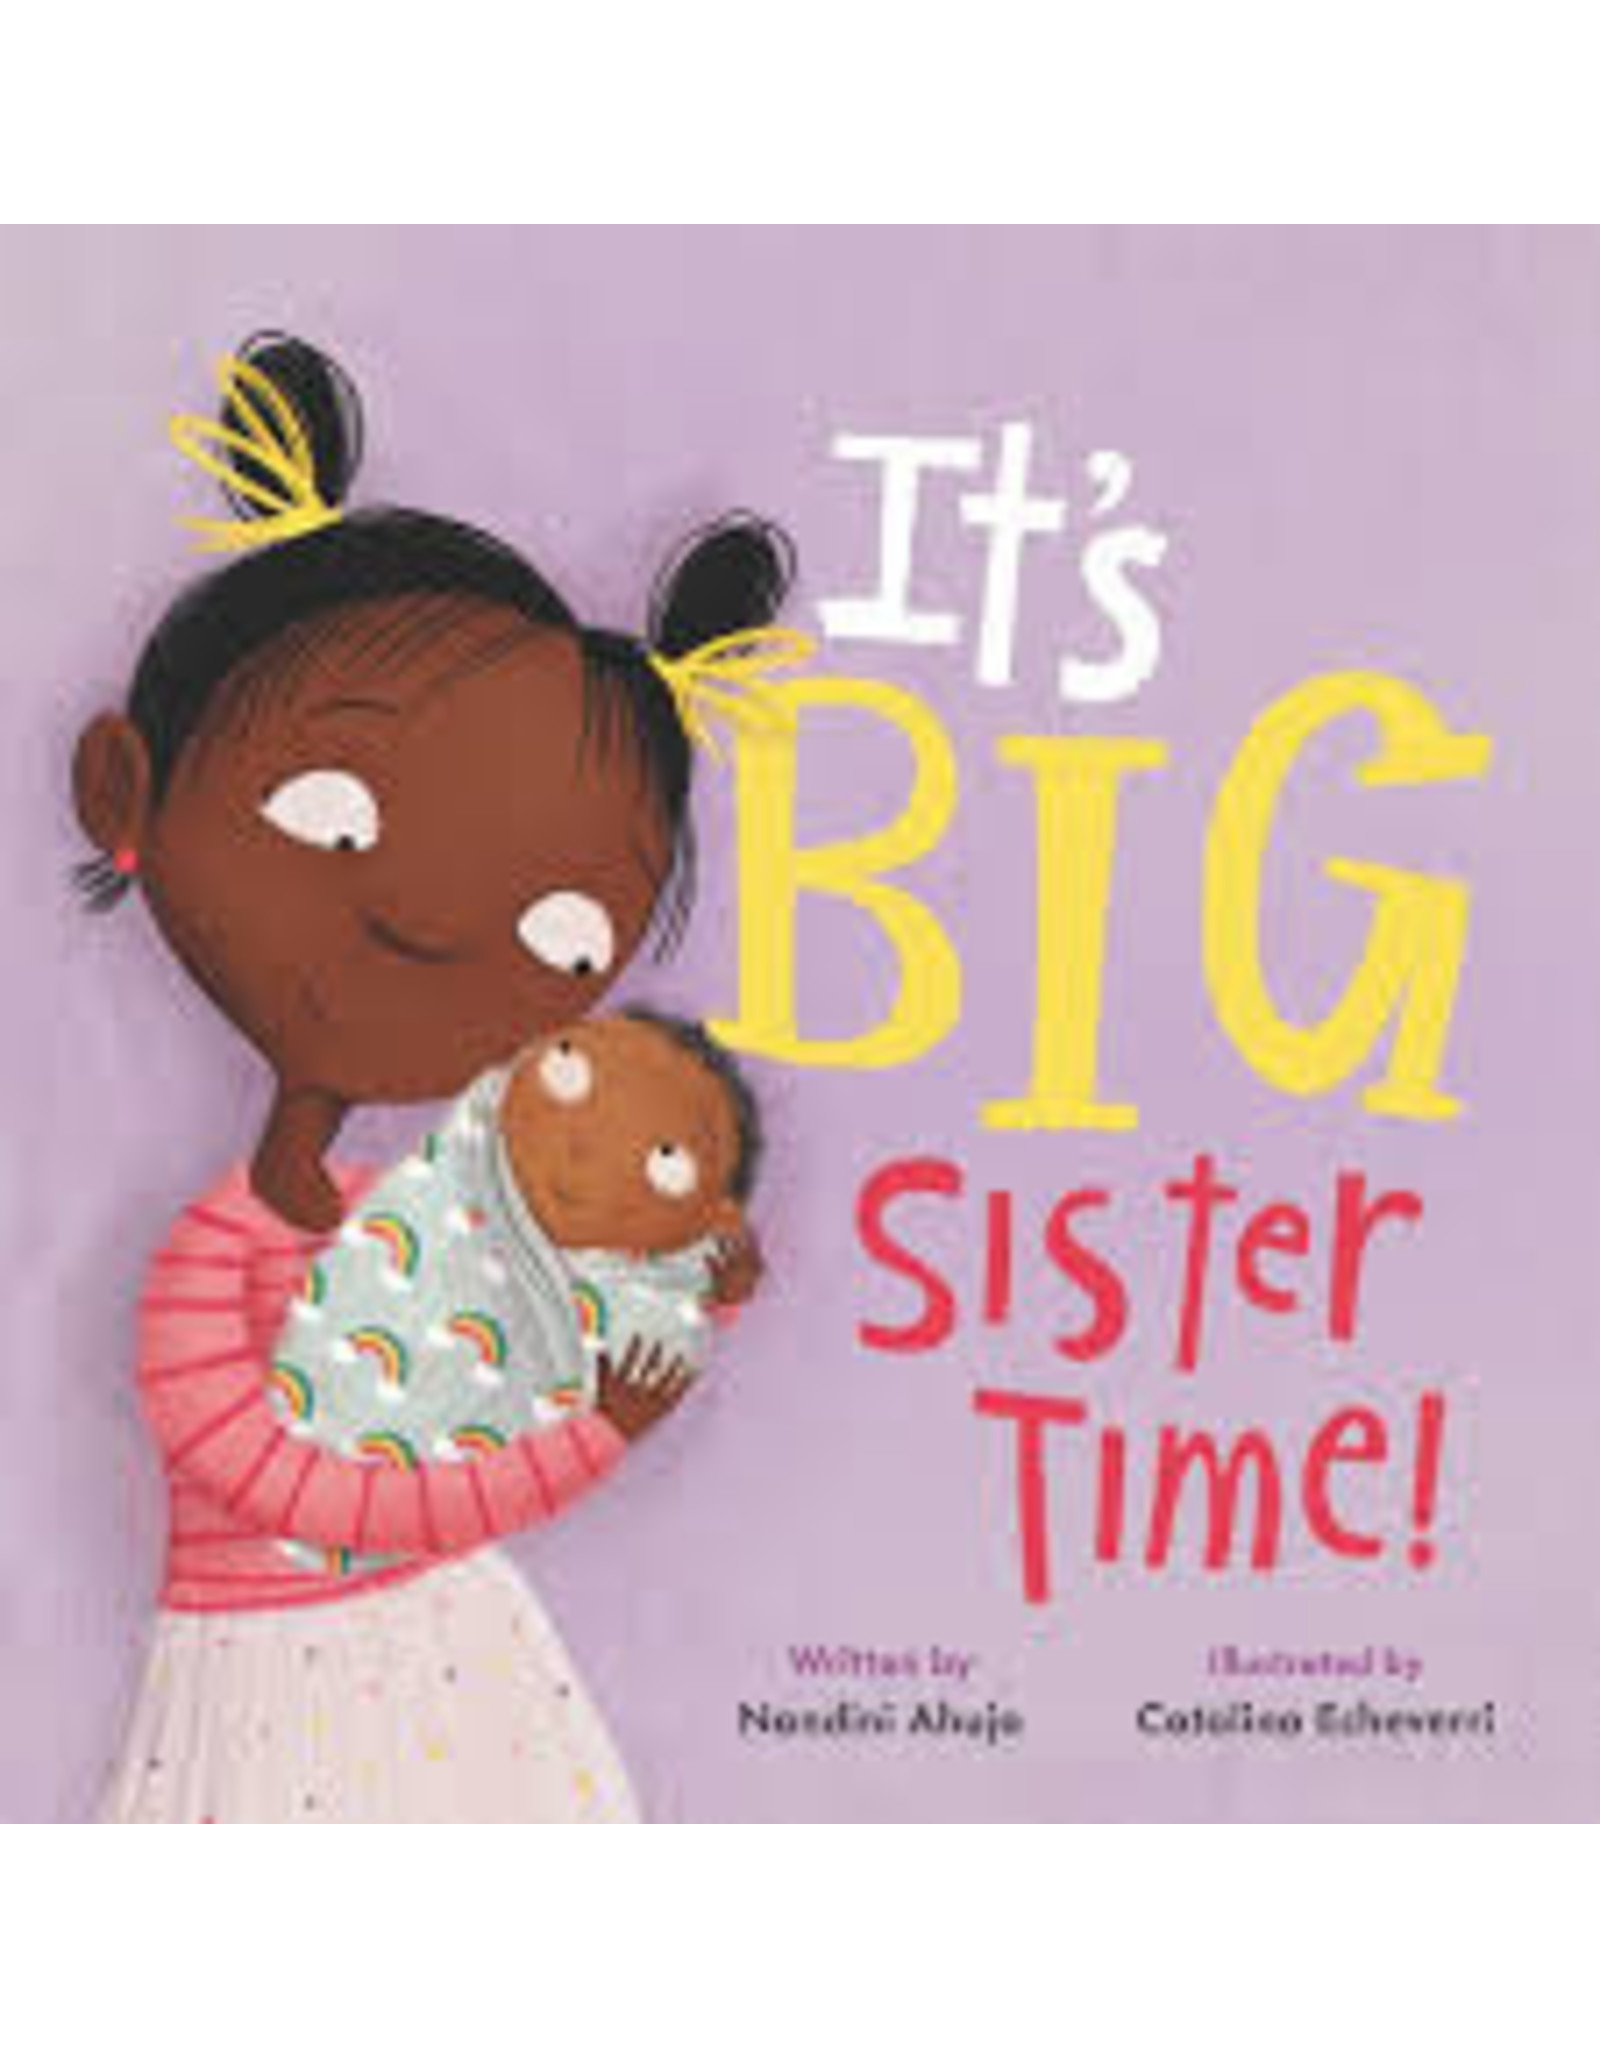 Books It's Big Sister Time! written by Nandini Ahuja and Illustrated by Catalina Echeverri